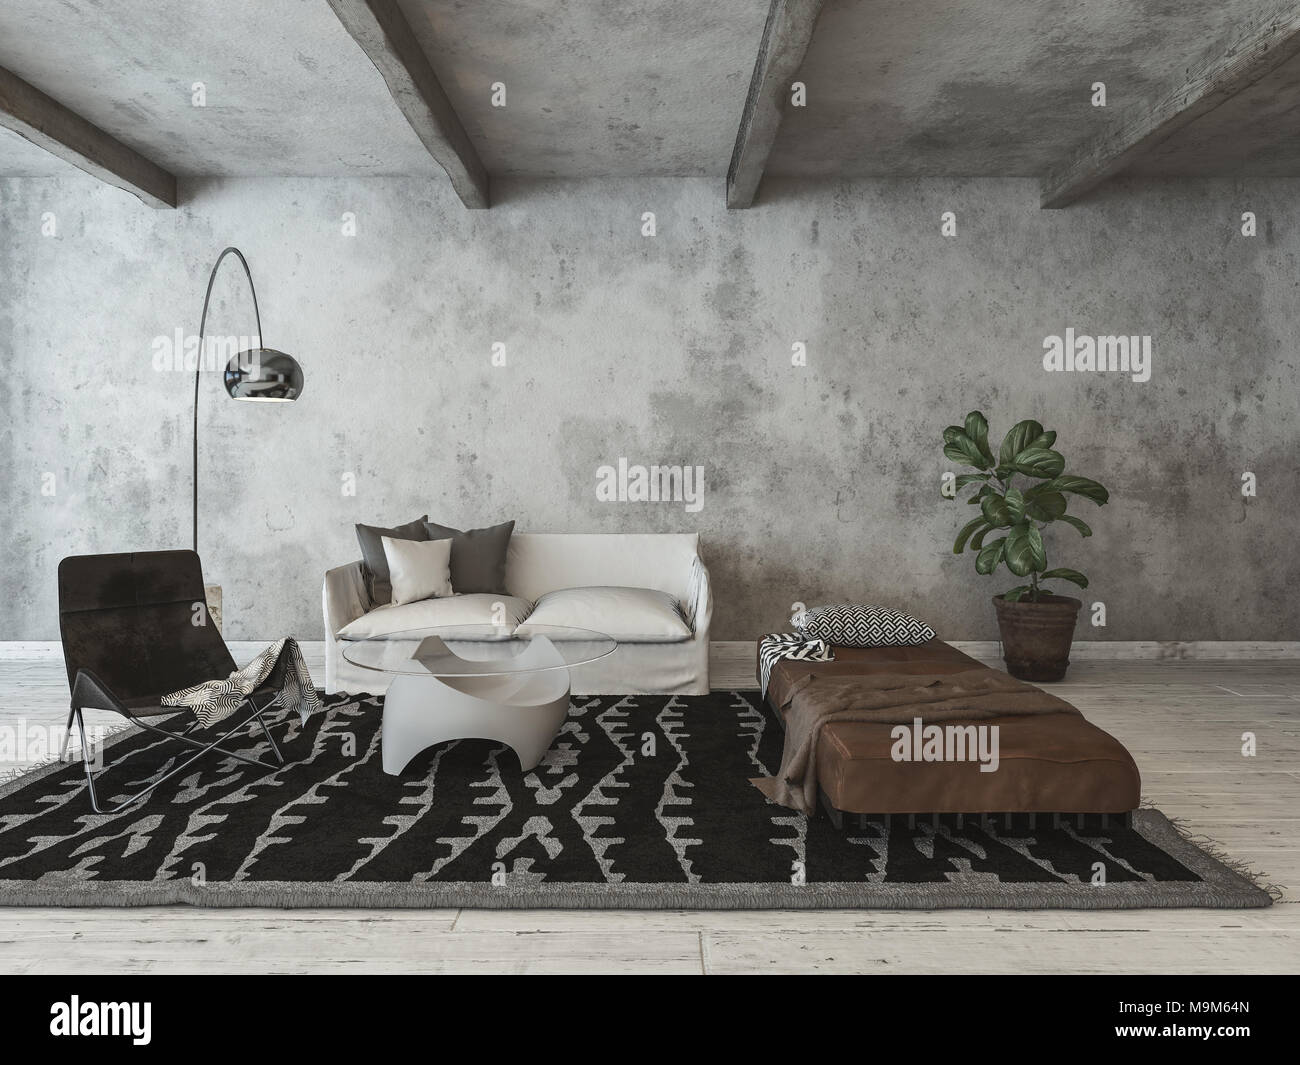 Terrific Hipster Modern Loft Conversion Living Room With Texture Grey Unemploymentrelief Wooden Chair Designs For Living Room Unemploymentrelieforg